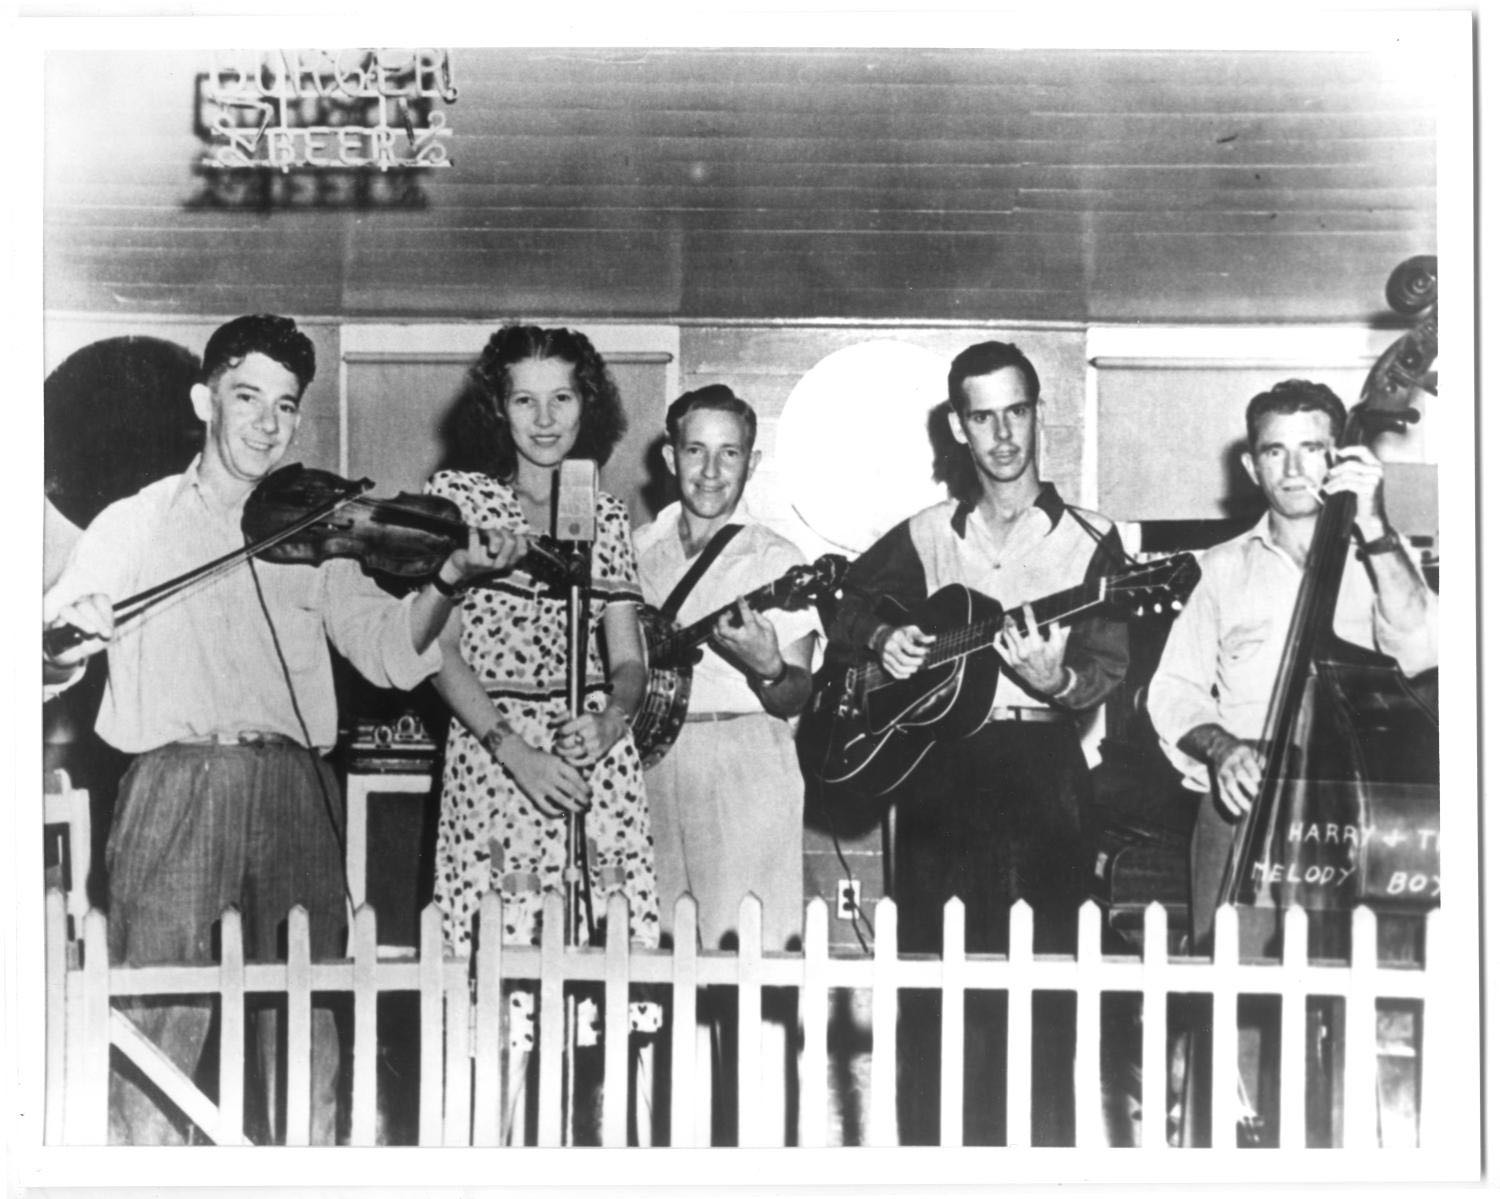 Photo of Harry Choates and his band